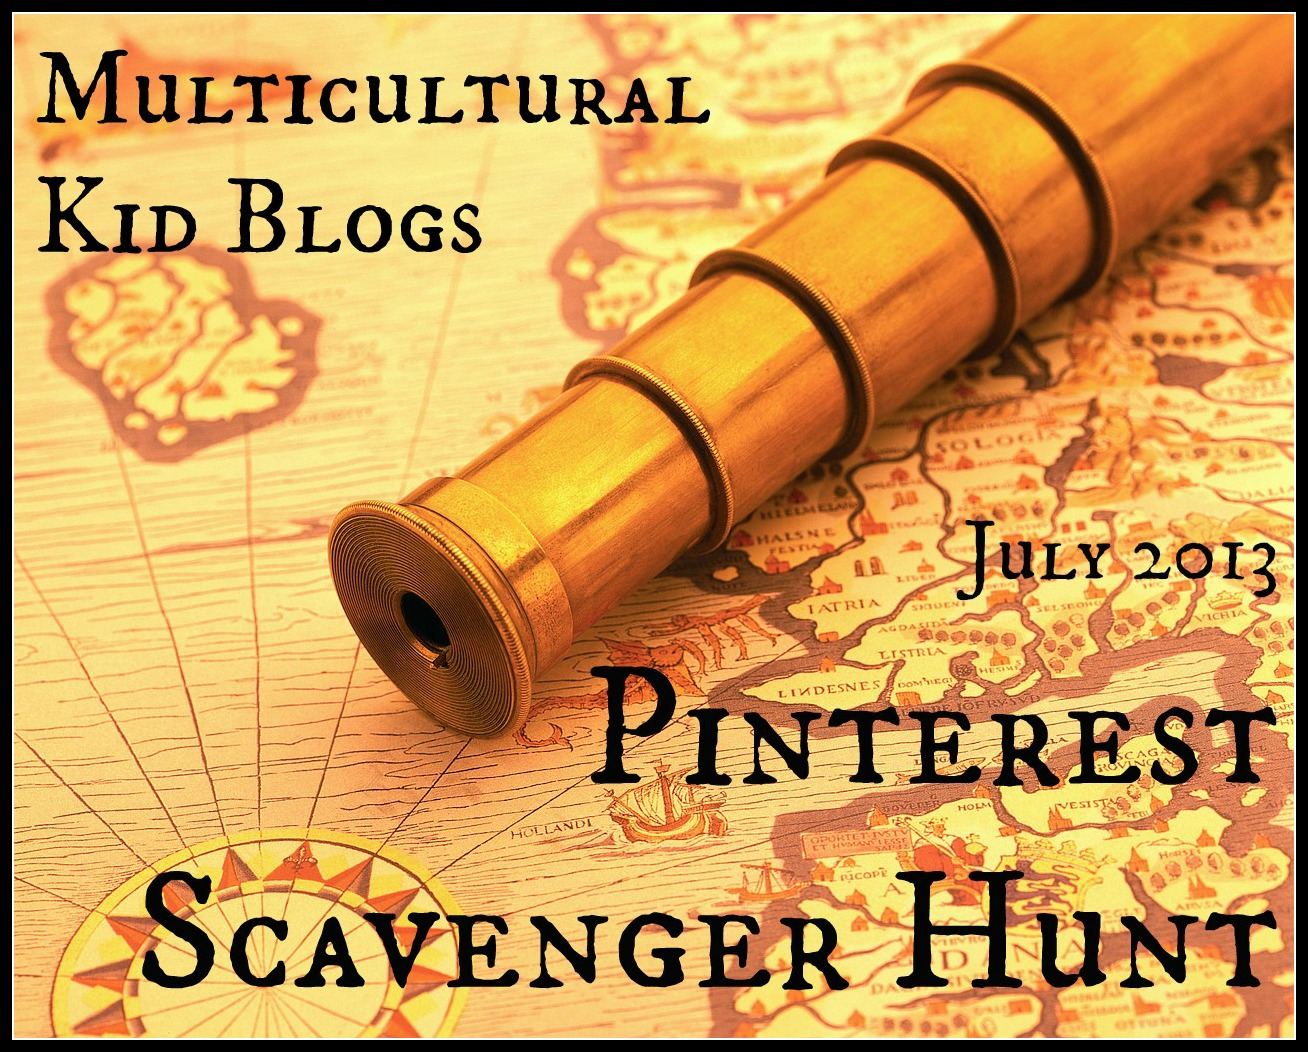 Multicultural Kid Blogs Pinterest Scavenger Hunt